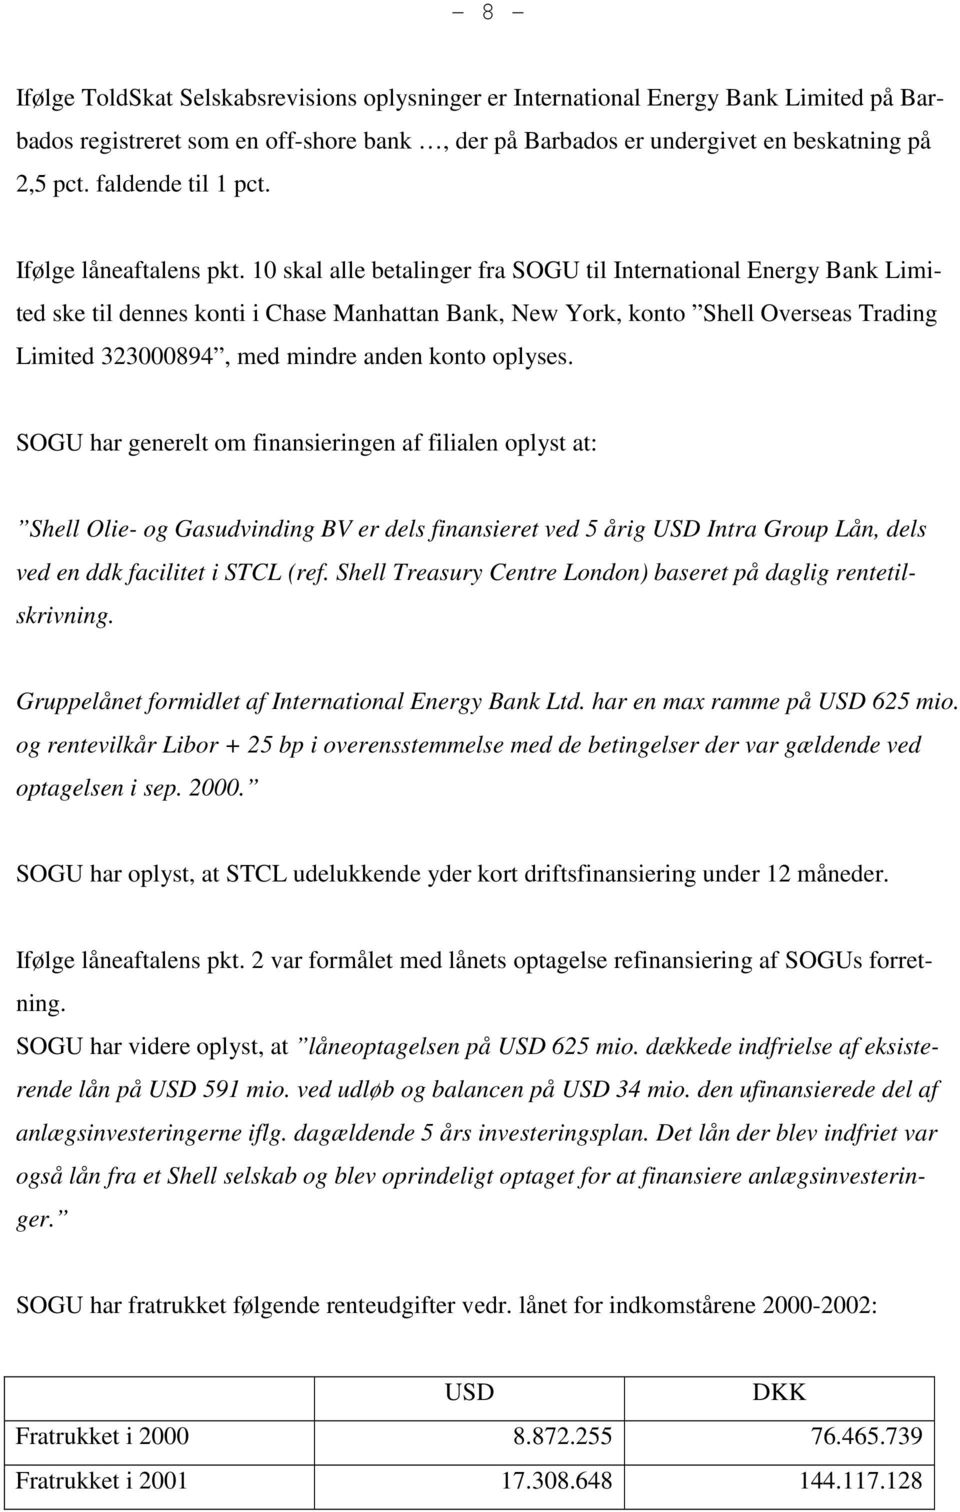 10 skal alle betalinger fra SOGU til International Energy Bank Limited ske til dennes konti i Chase Manhattan Bank, New York, konto Shell Overseas Trading Limited 323000894, med mindre anden konto